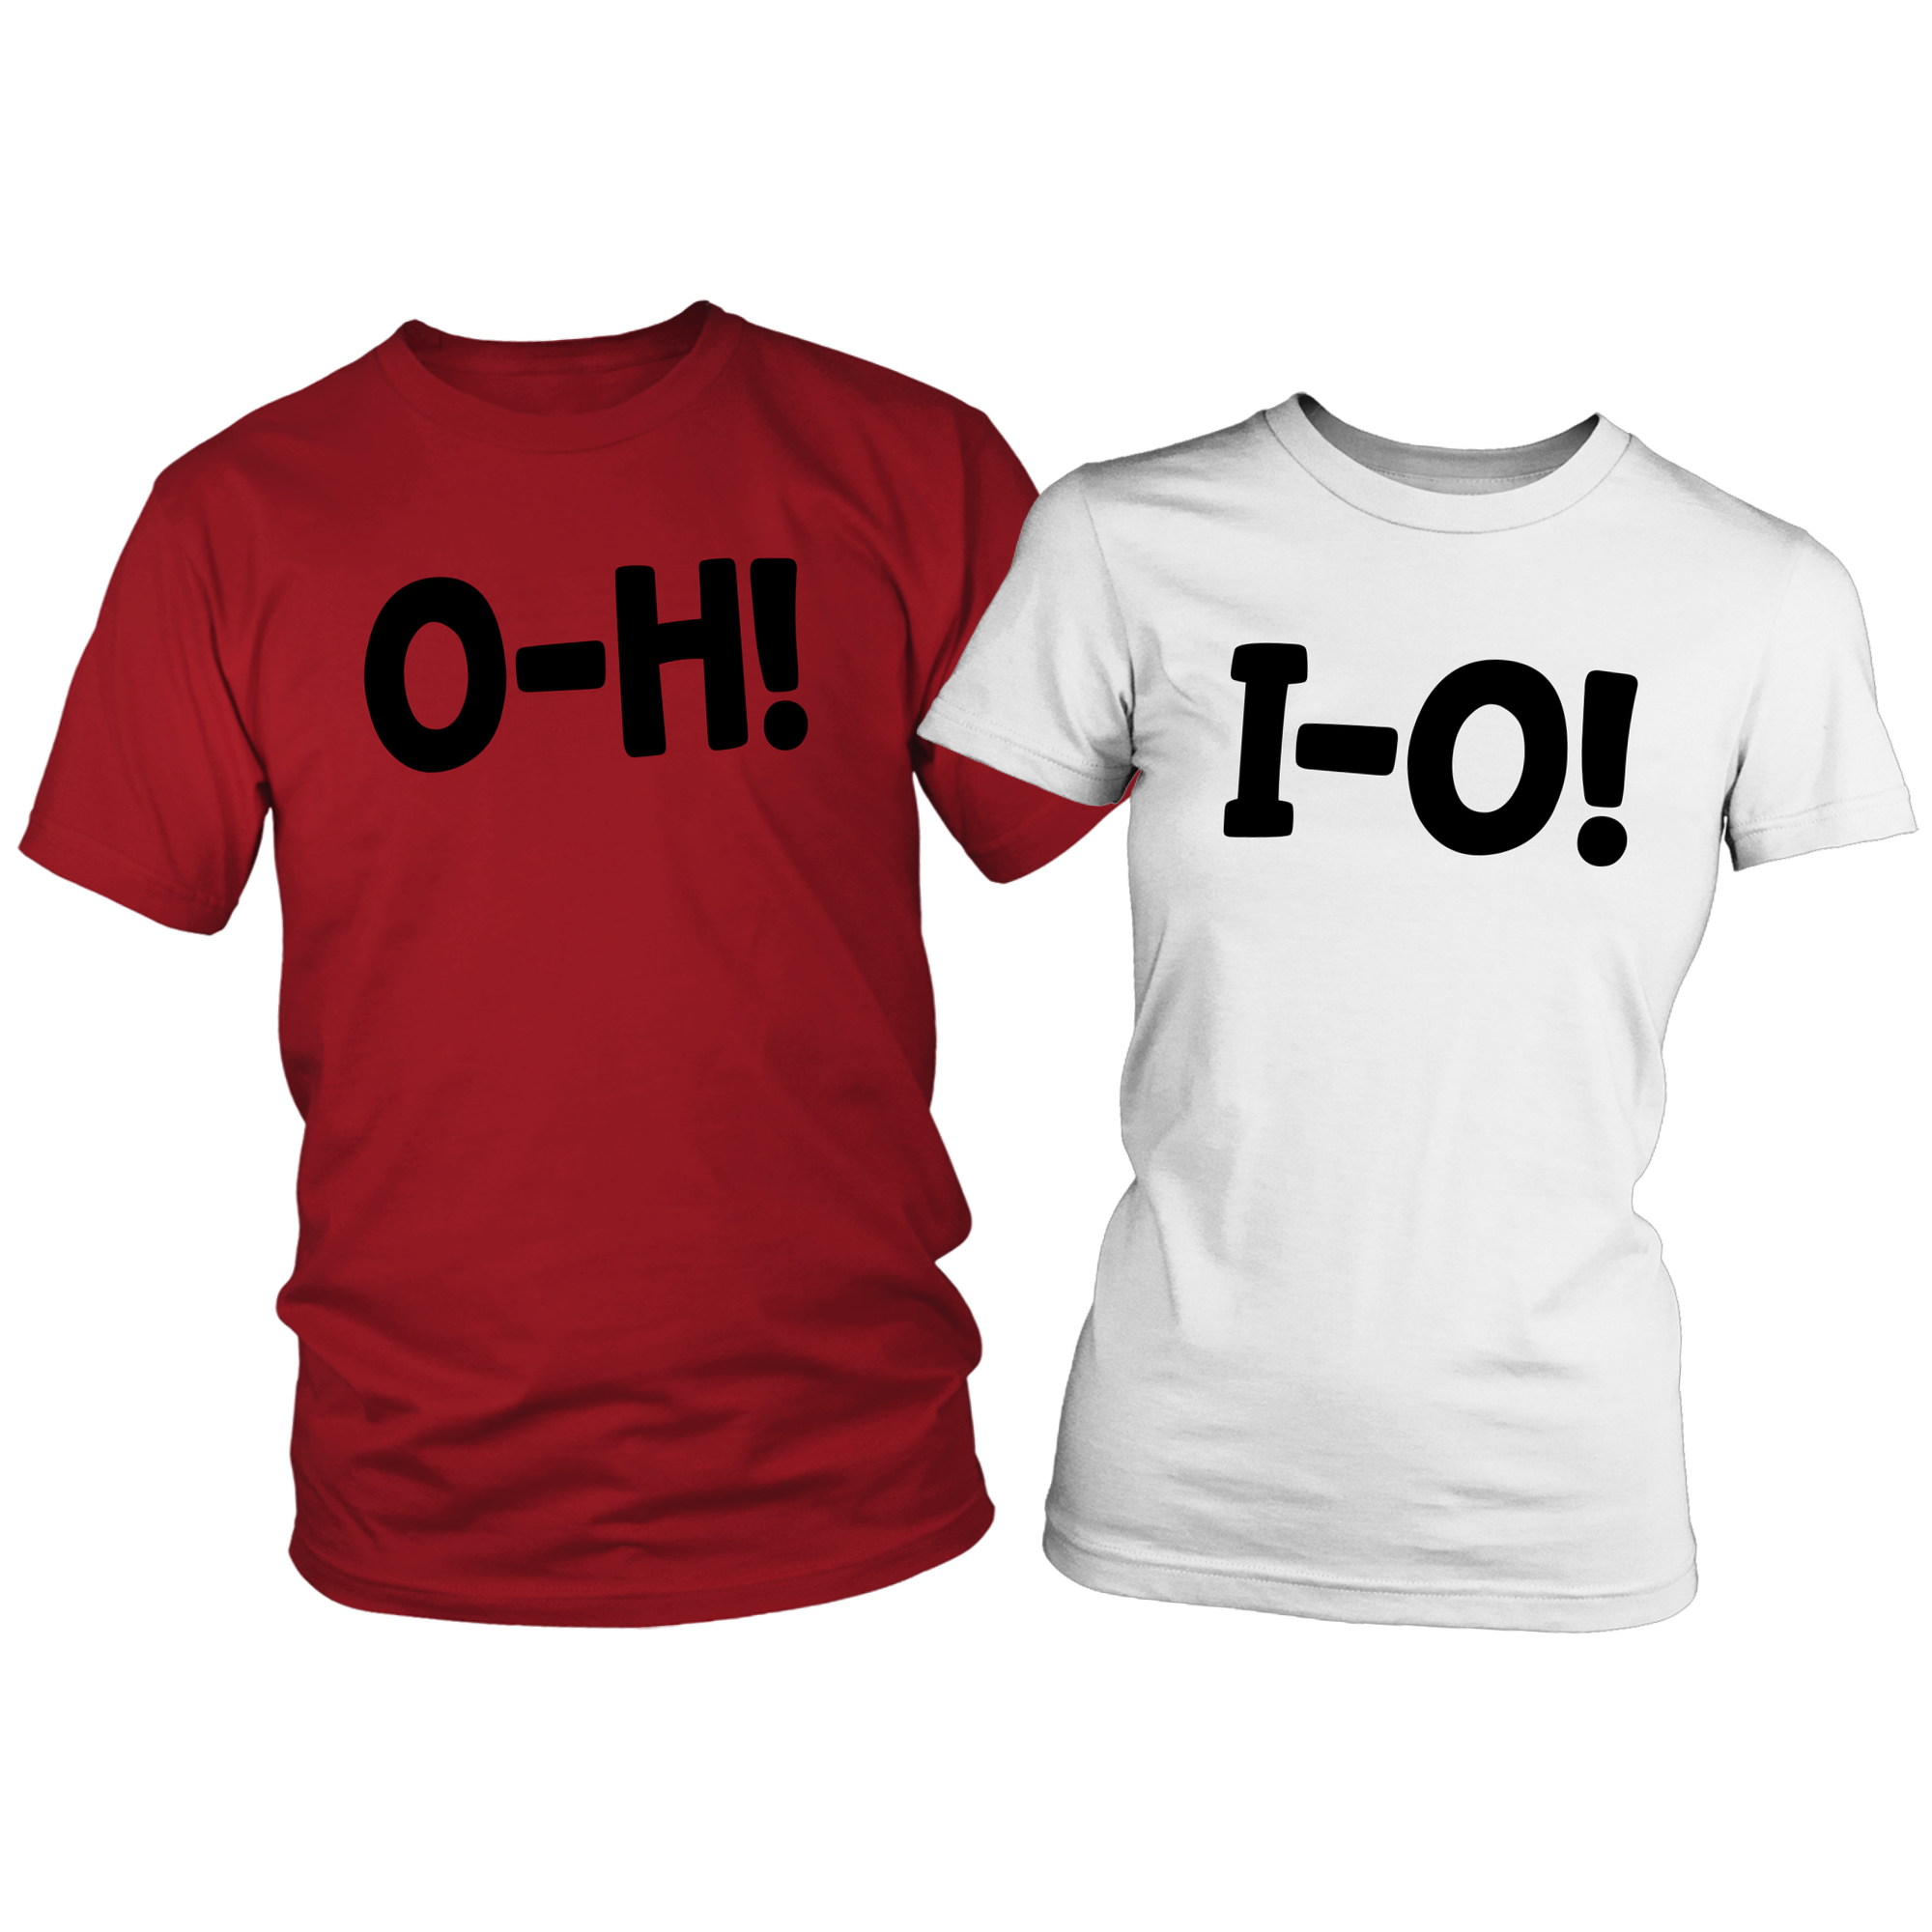 O-H! I-O! Red/White Combo Couples T-shirts